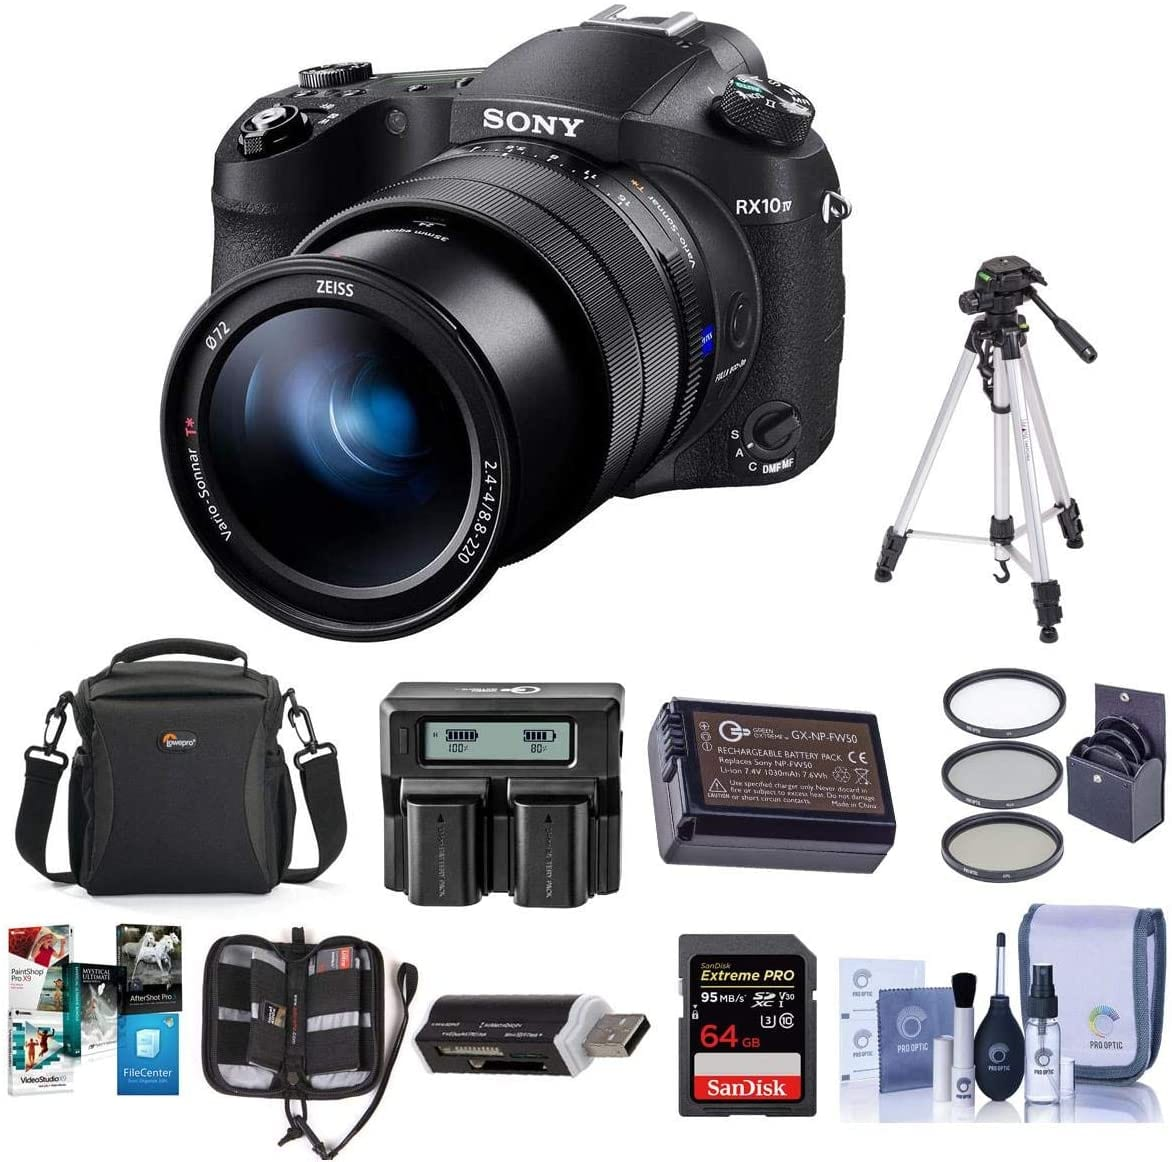 DSC-RX10 bundle